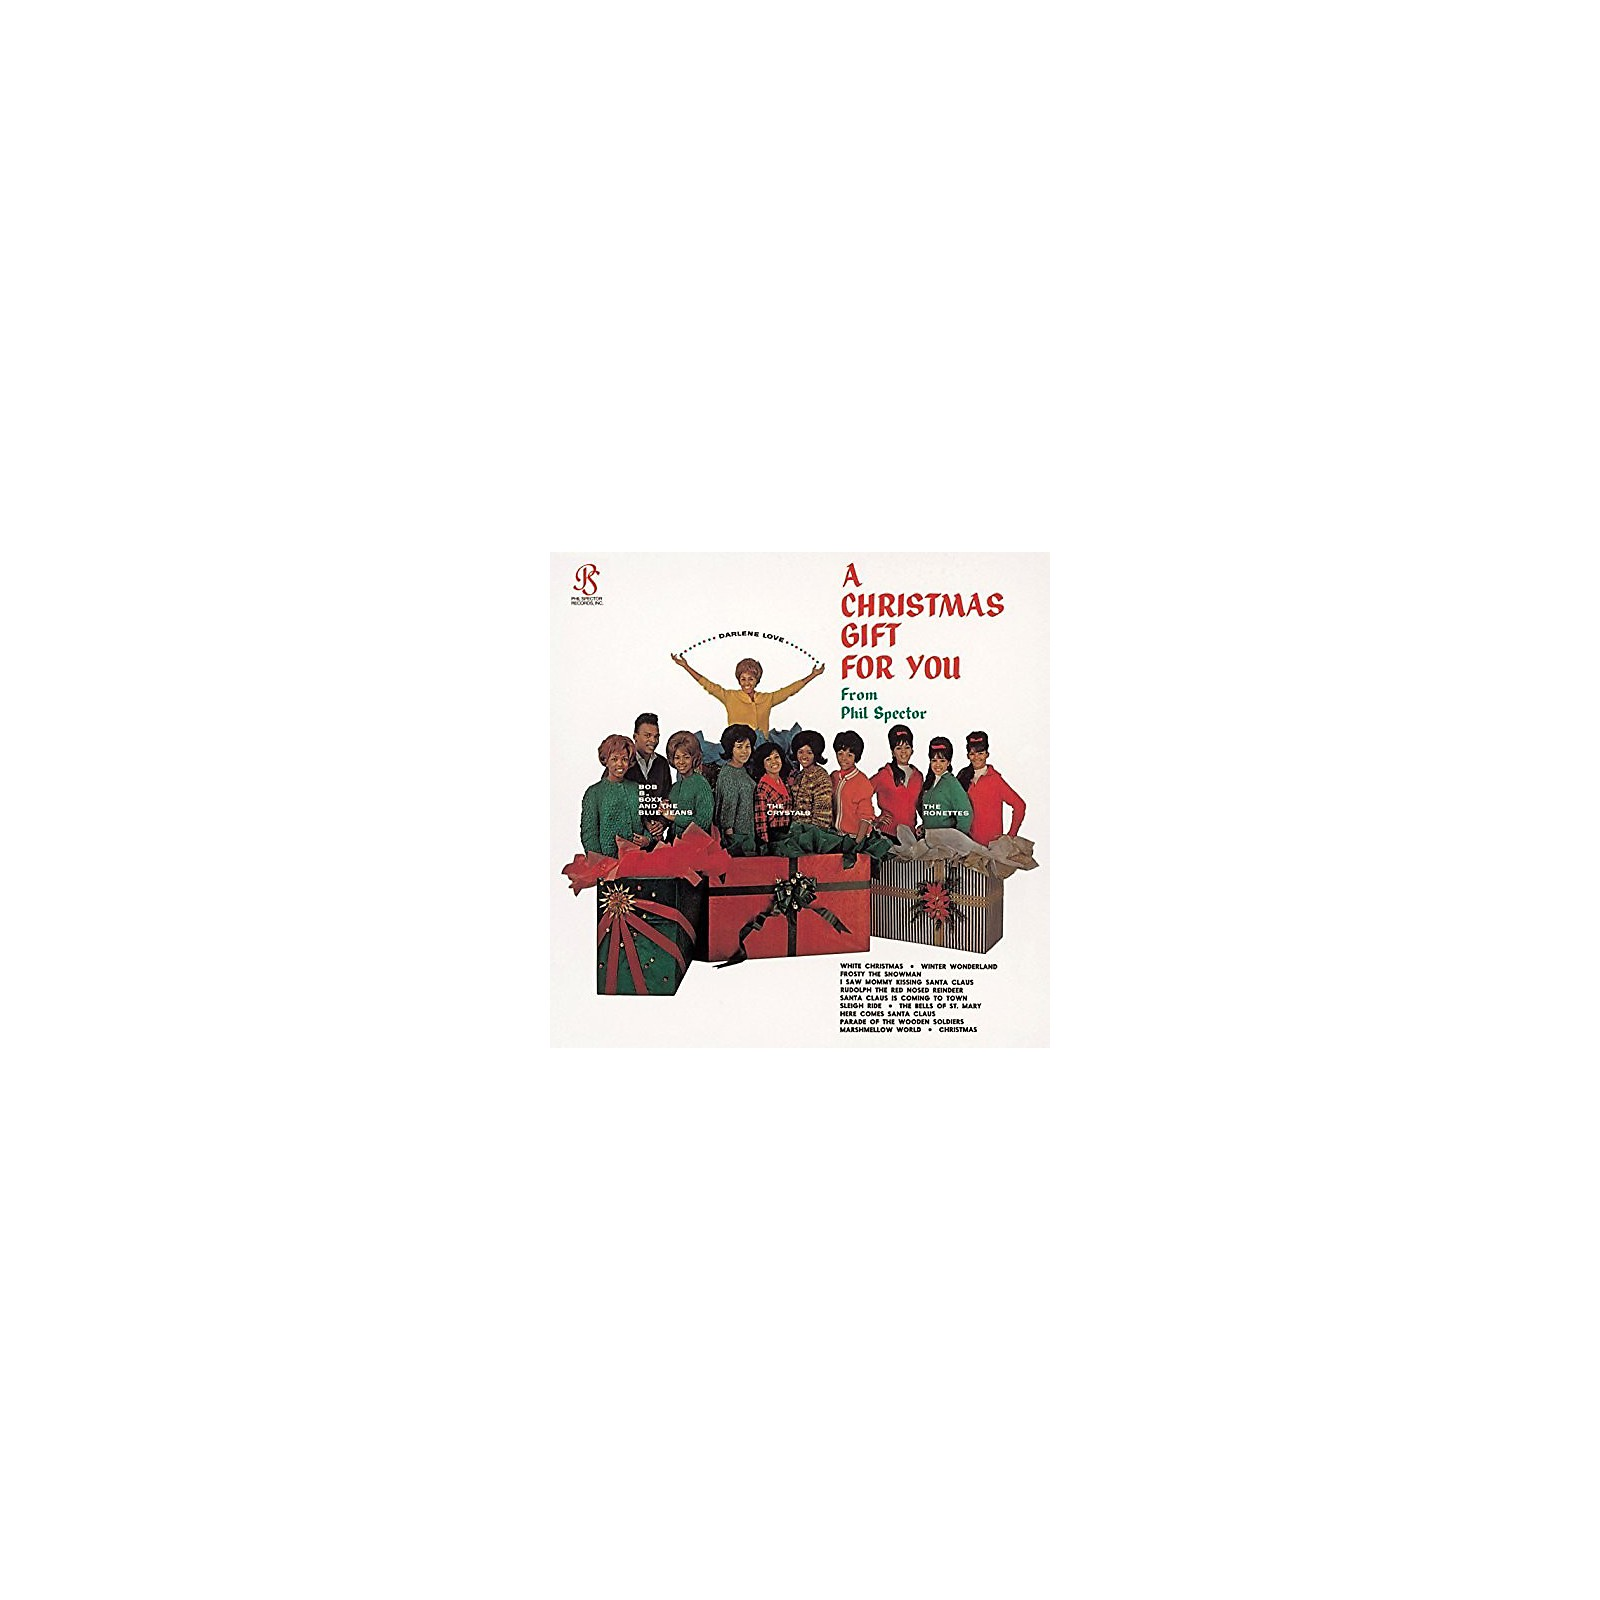 Alliance Phil Spector - Christmas Gift for You from Phil Spector